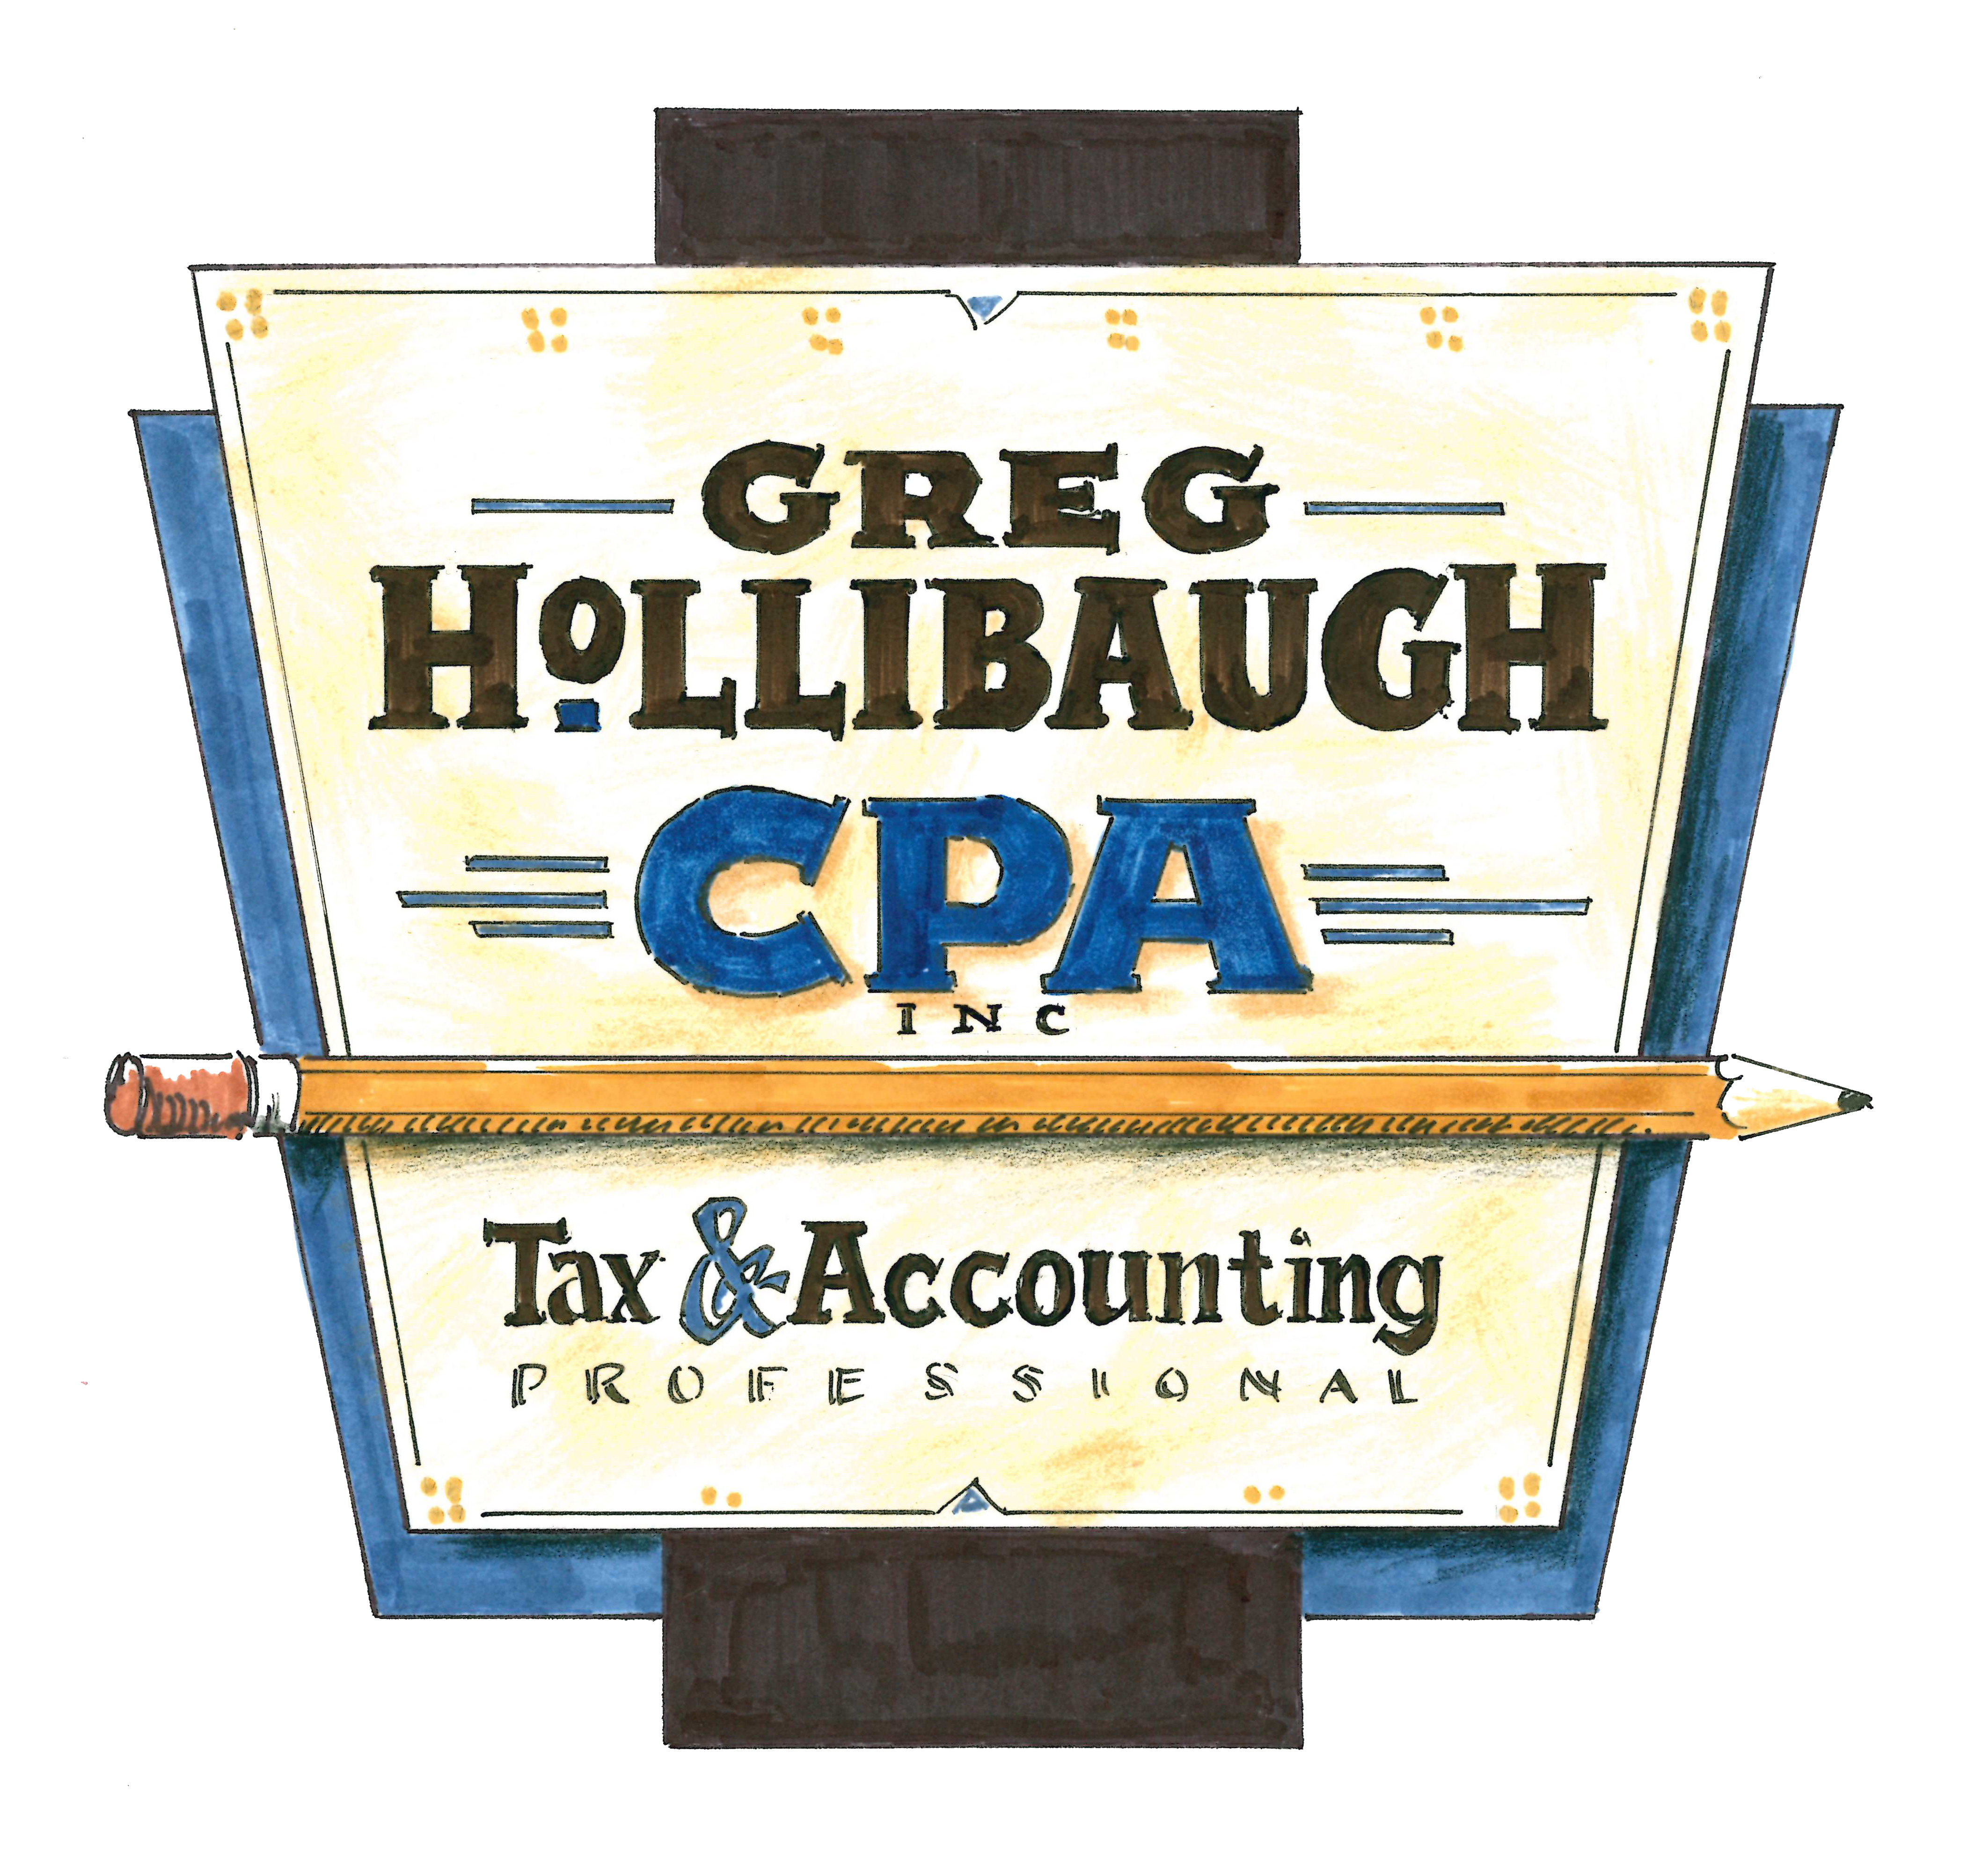 Greg Hollibaugh CPA